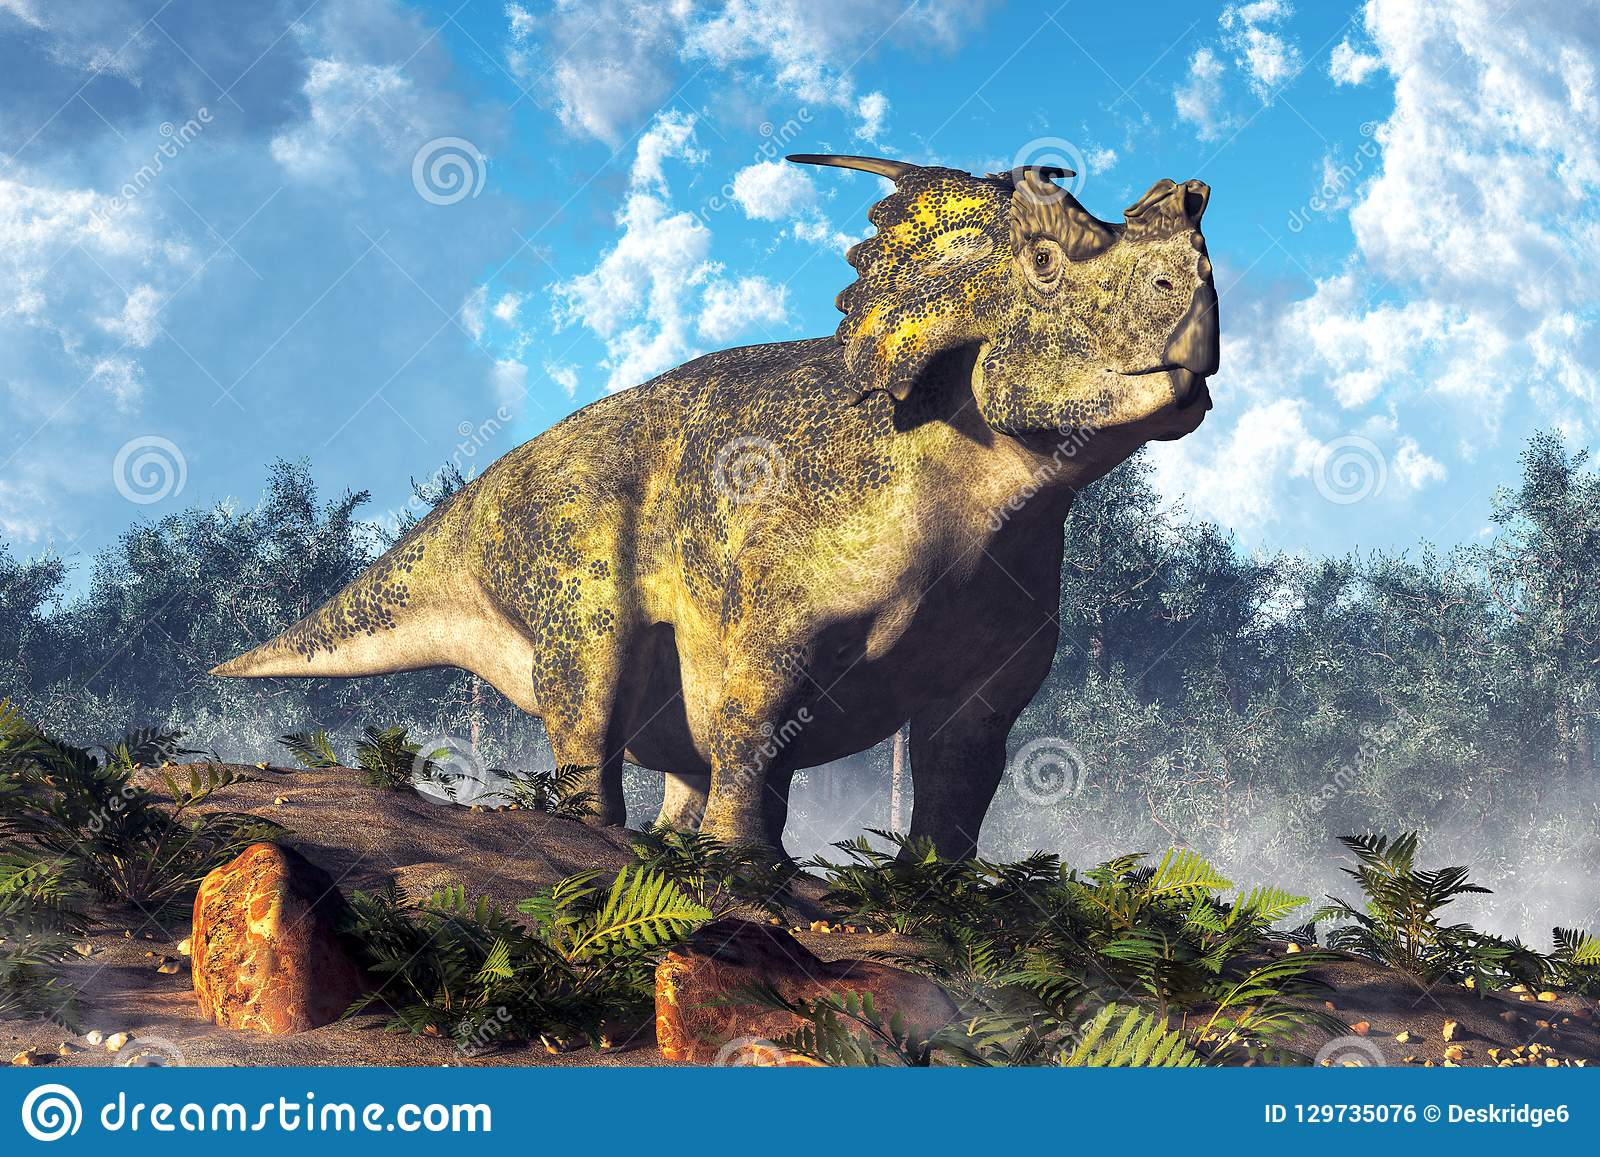 Triceratops | Land Before Time Wiki | FANDOM powered by Wikia